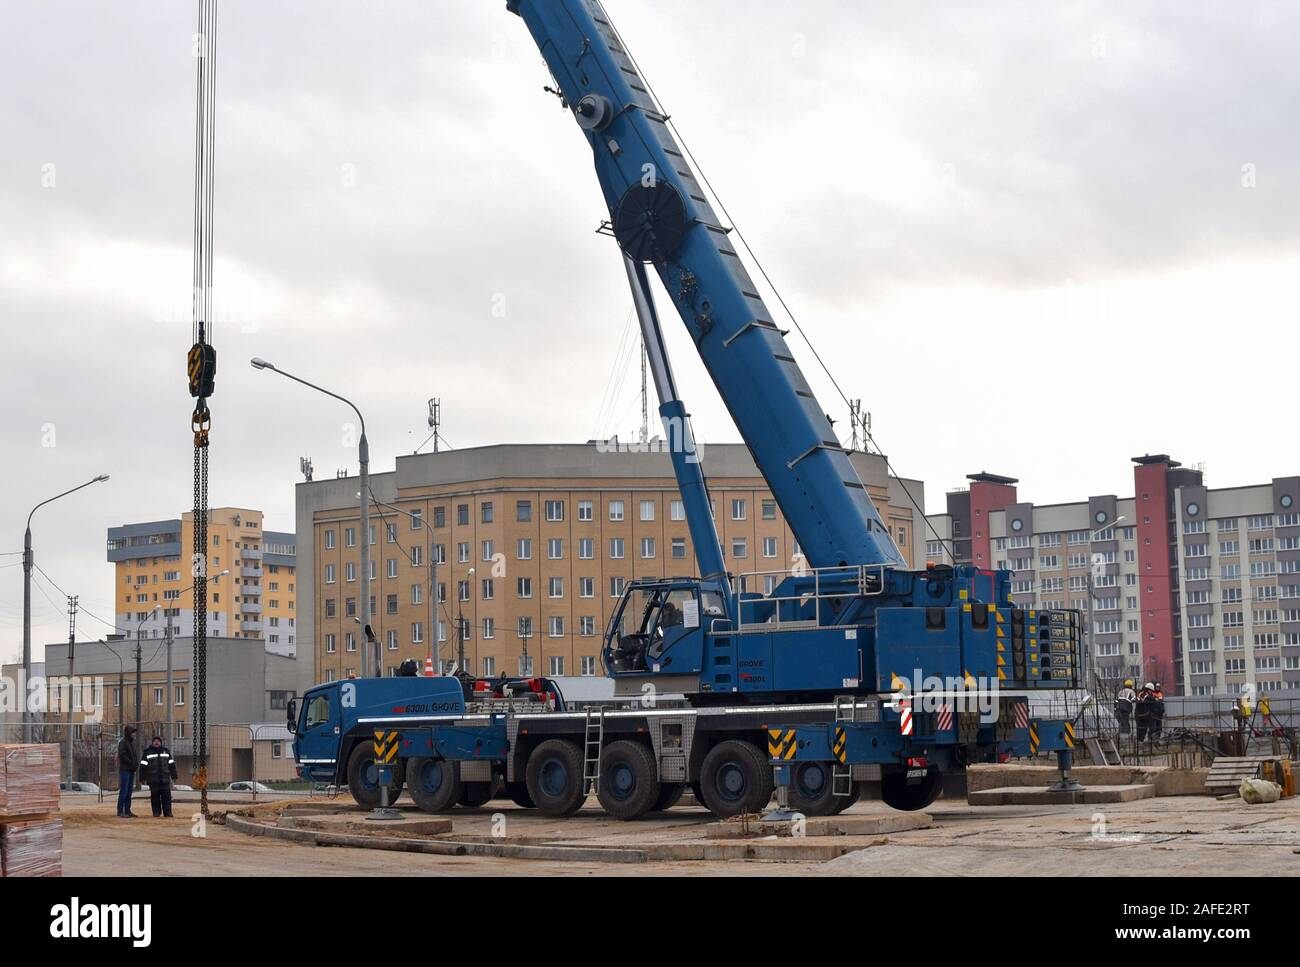 07.12.2019 Minsk, Belarus: The telescopic mobile crane Grove GMK 6300 L  at construction site. Auto crane during the unloading of cargo and building m Stock Photo